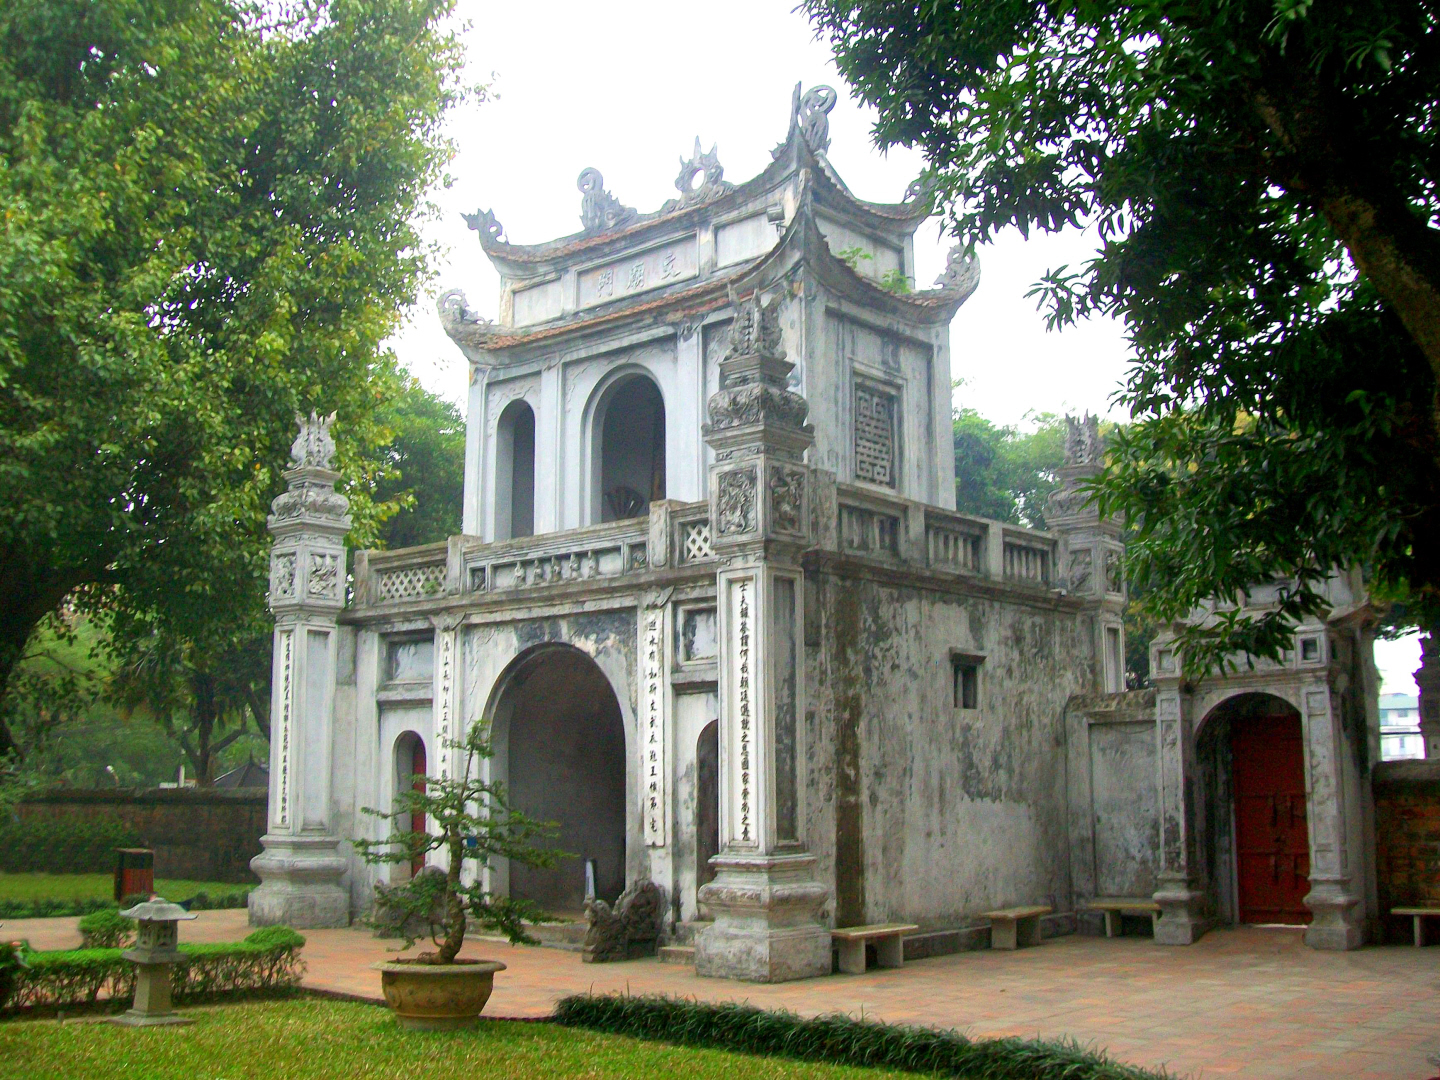 Entrance to the Confucian Temple in Hanoi, Viet Nam